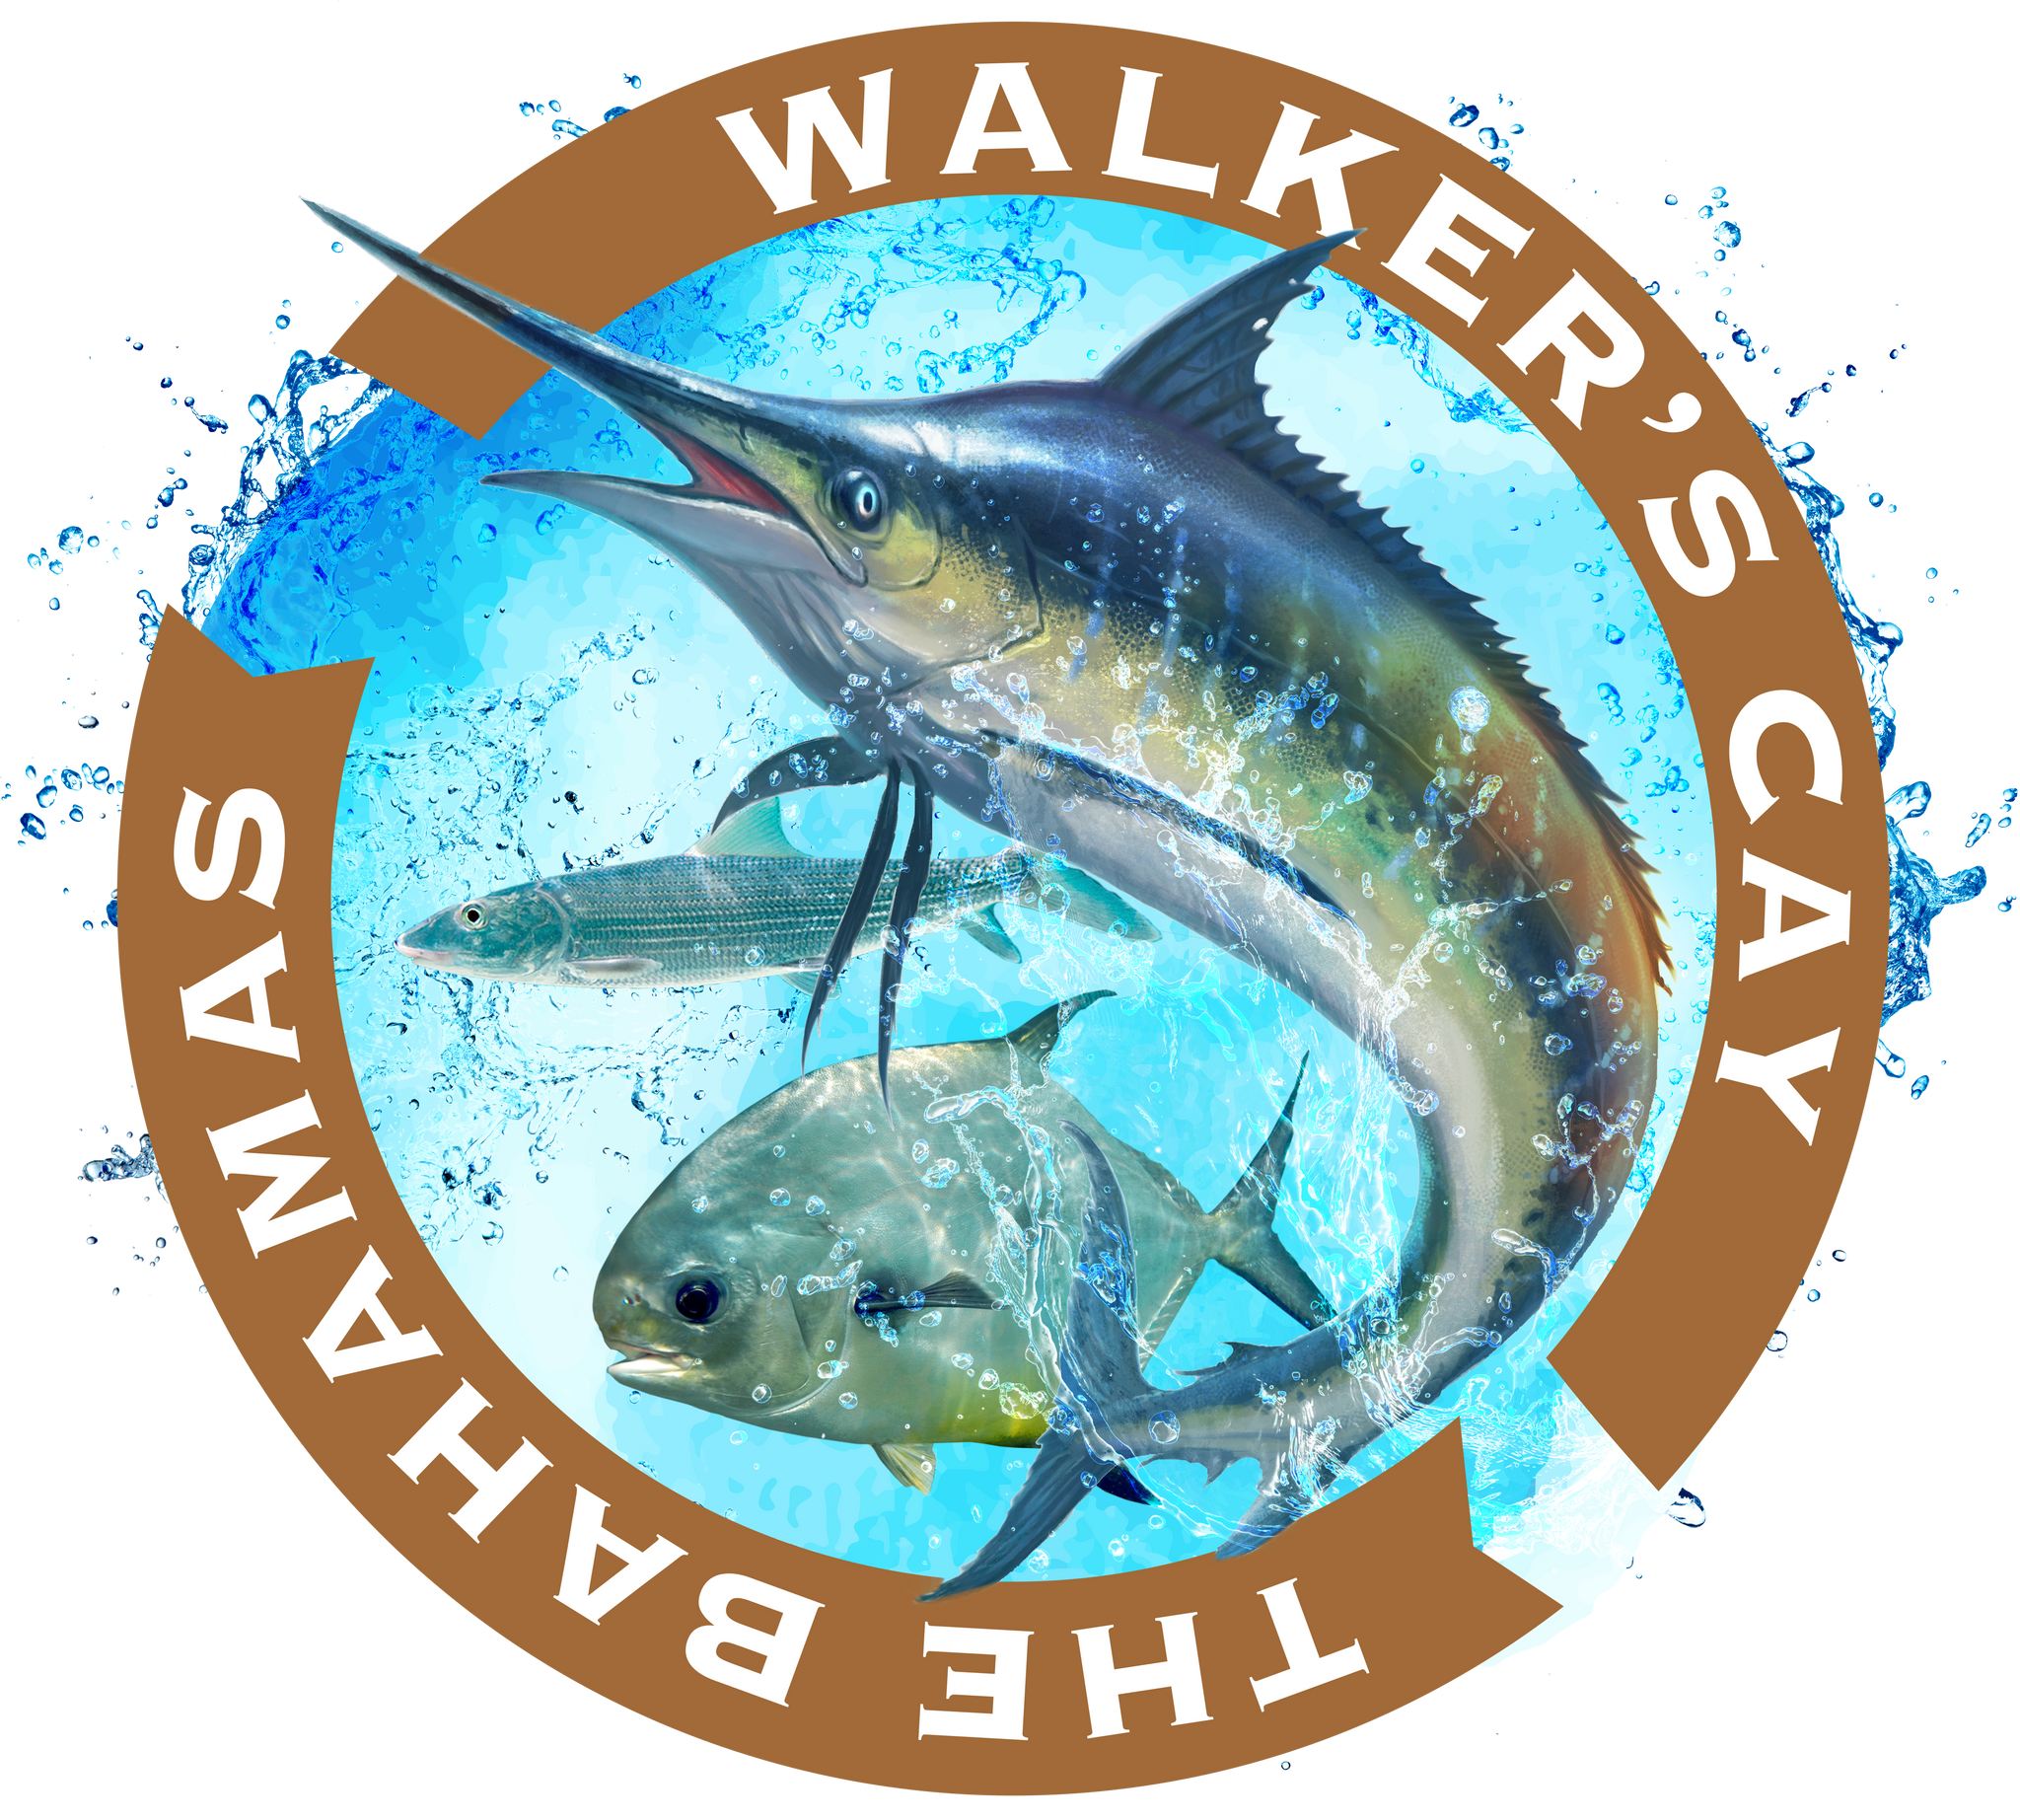 Walker's Cay Trifecta Decal